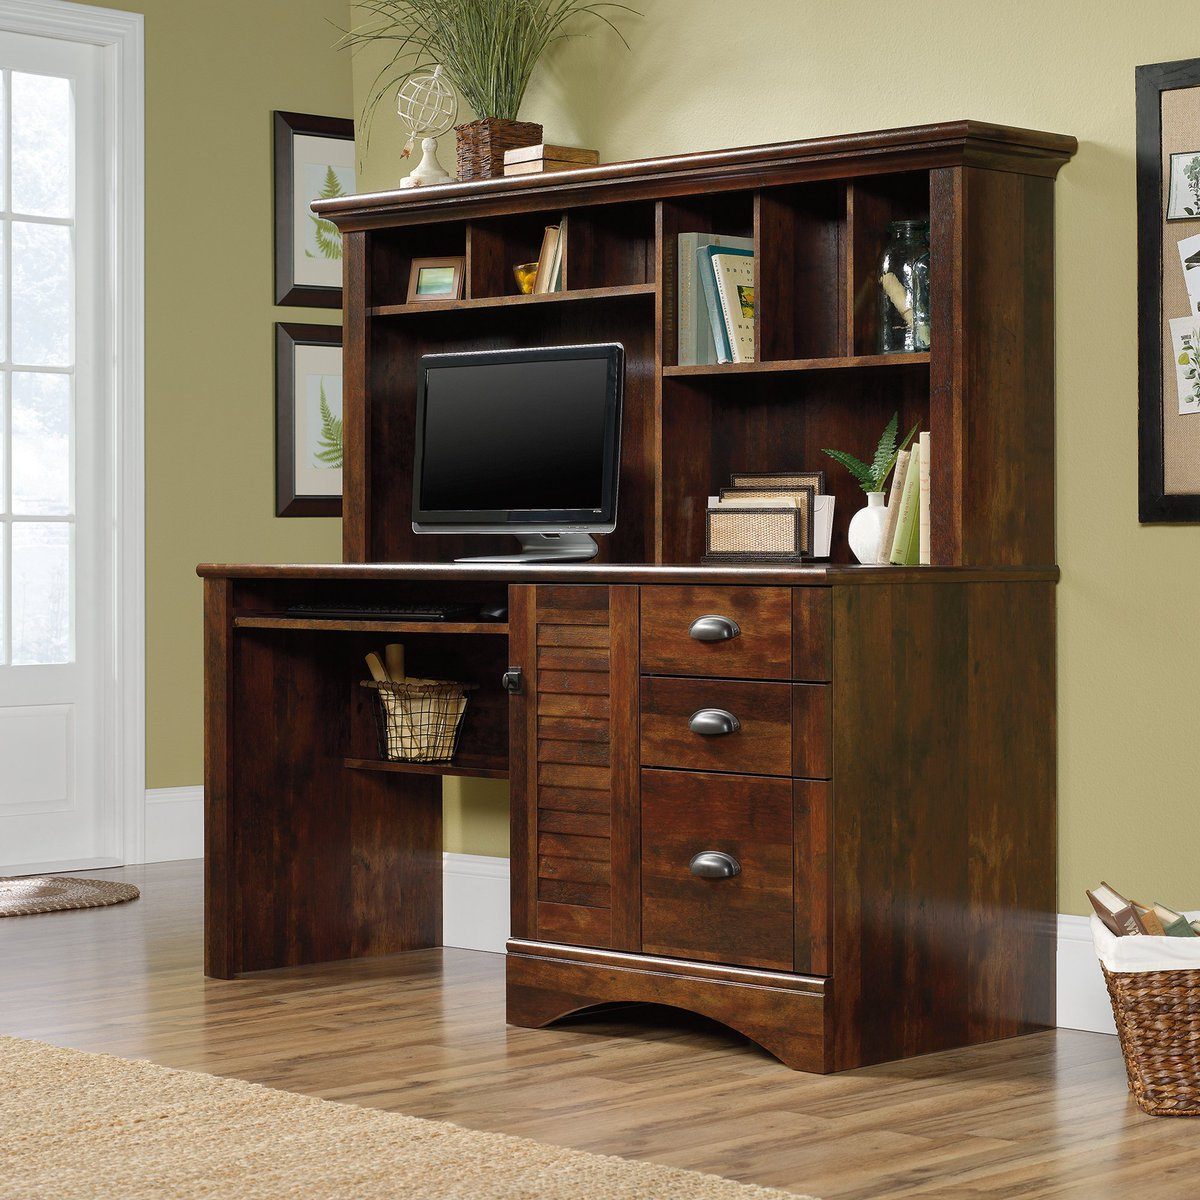 Brown Computer Desk With Hutch Https Www Rcwilley Furniture Home Office Desks 110772989 Cherry View Jsp